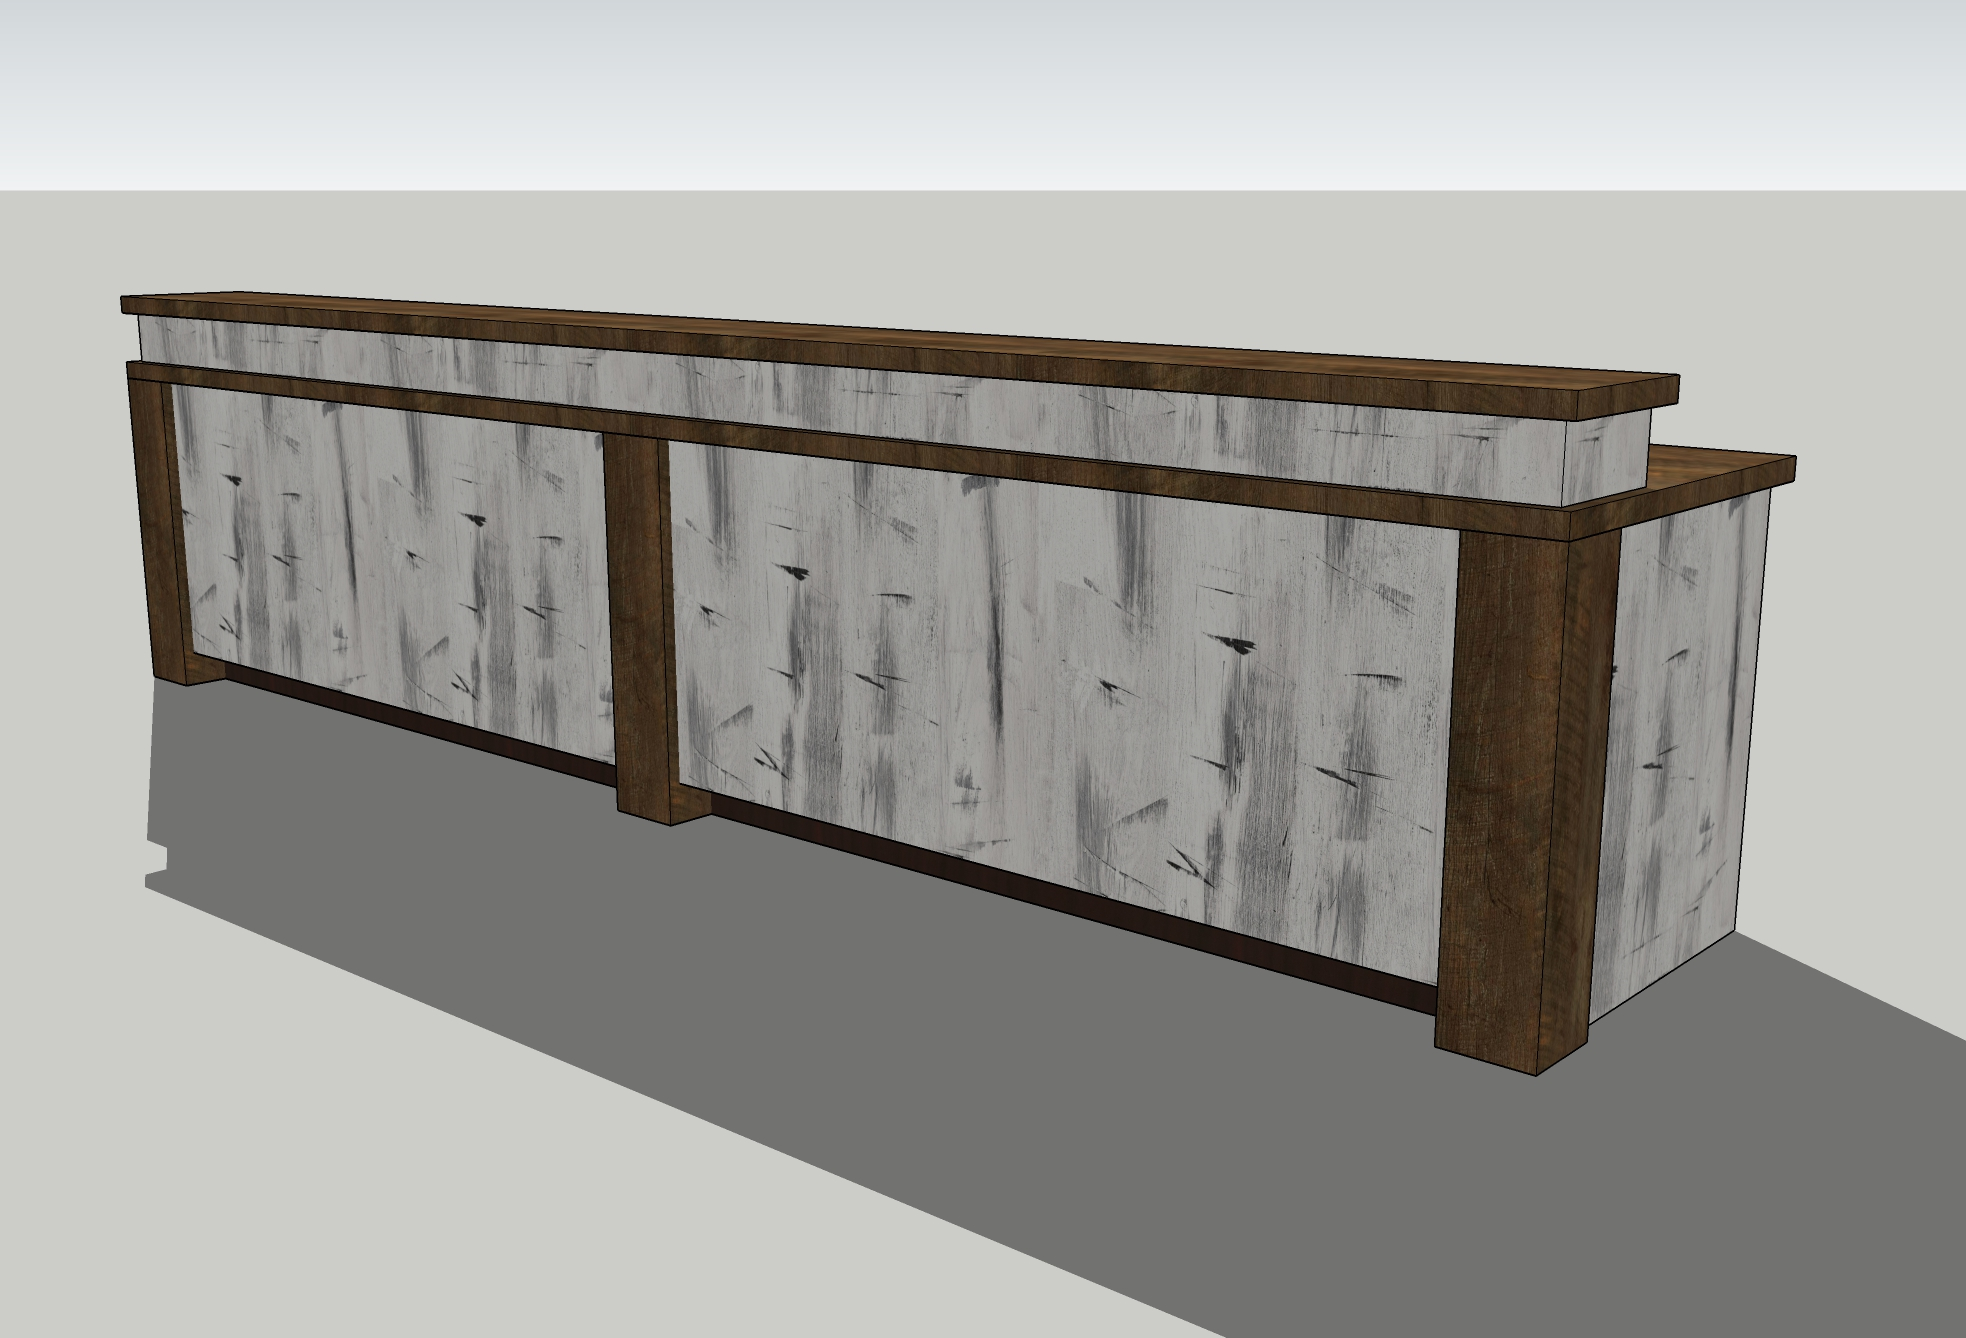 12 Foot Hotel Style Welcome Desk Envisionary Images